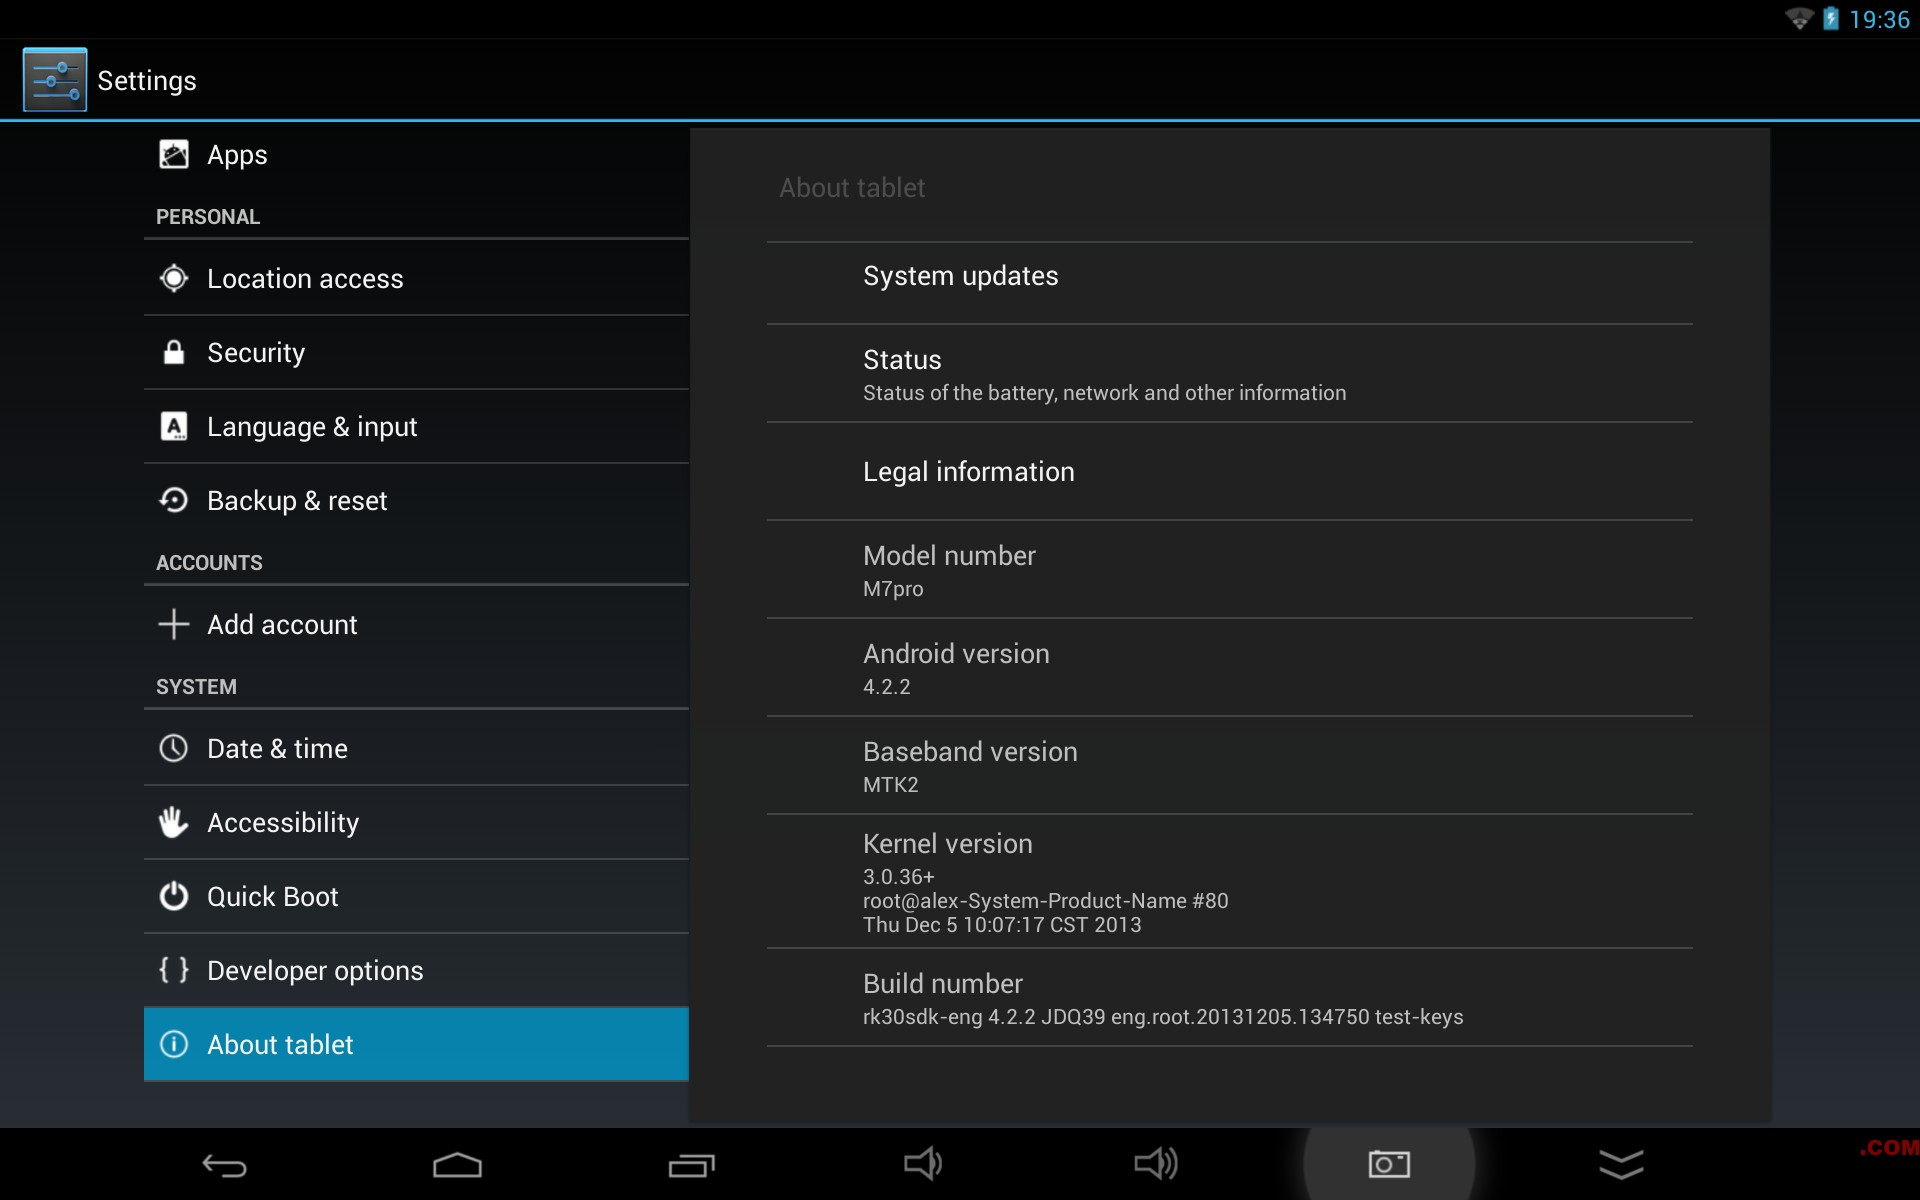 Pipo_M7pro_fw_20131205_settings_about.png